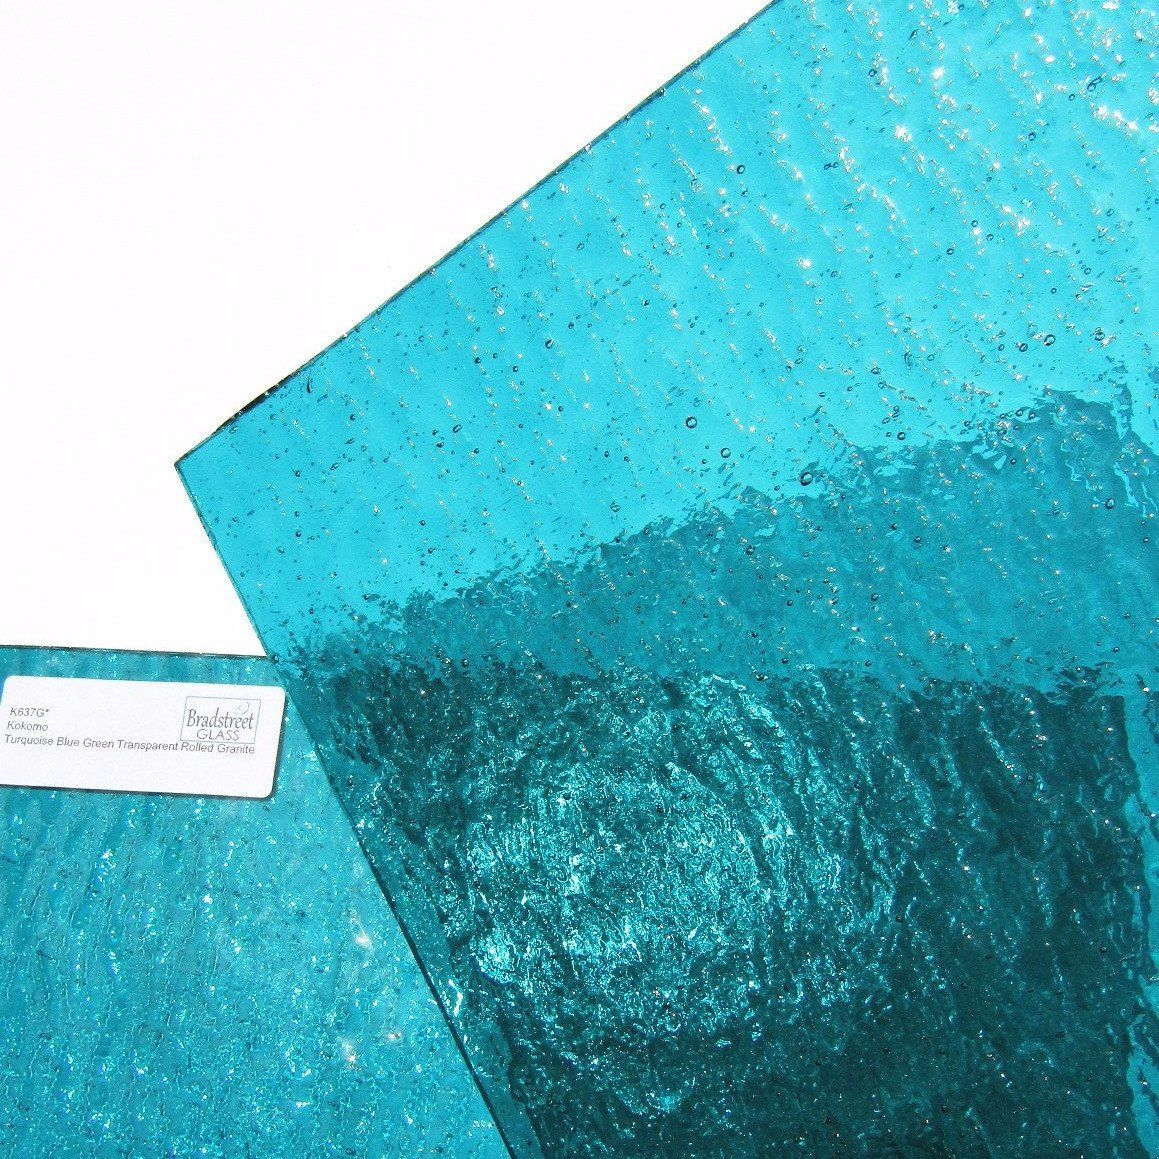 Kokomo 637g Stained Glass Sheet Cathedral Rolled Granite Textured Turquoise Blue Green Transparent 8 X 8 Or 10 X 10 Stained Glas Stained Glass Kokomo Glass